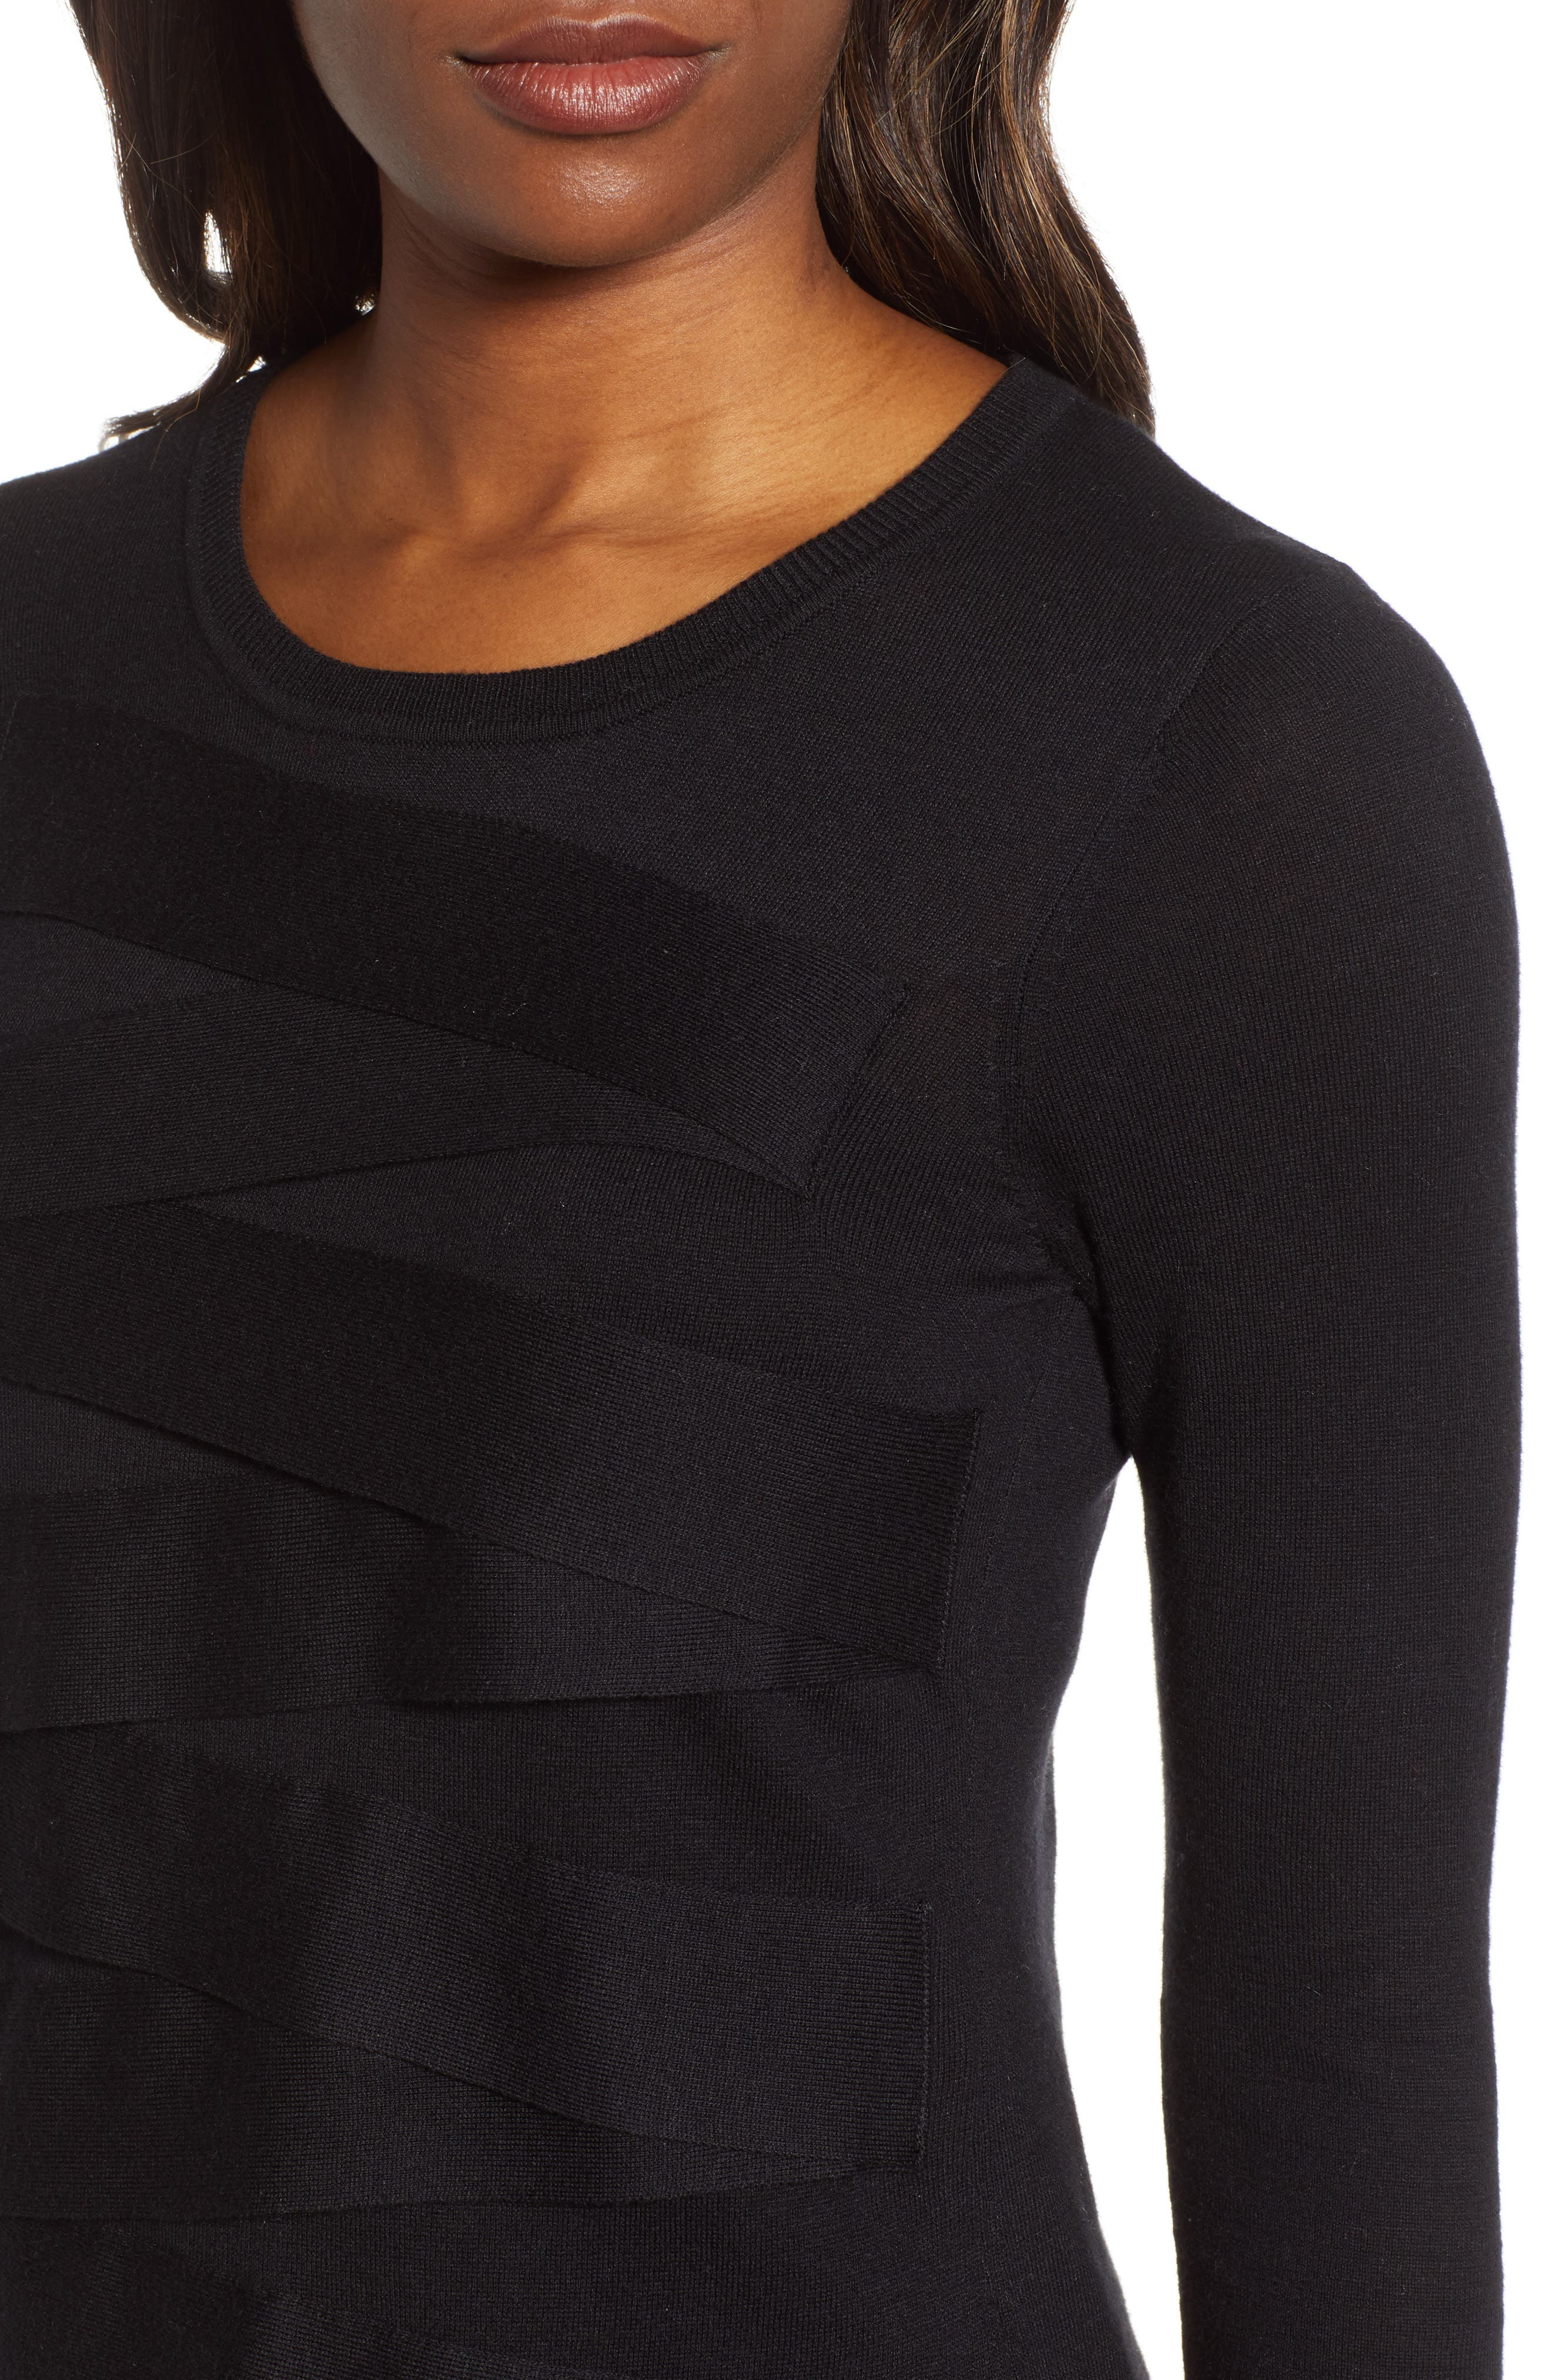 Zigzag Sweater,                             Alternate thumbnail 5, color,                             001